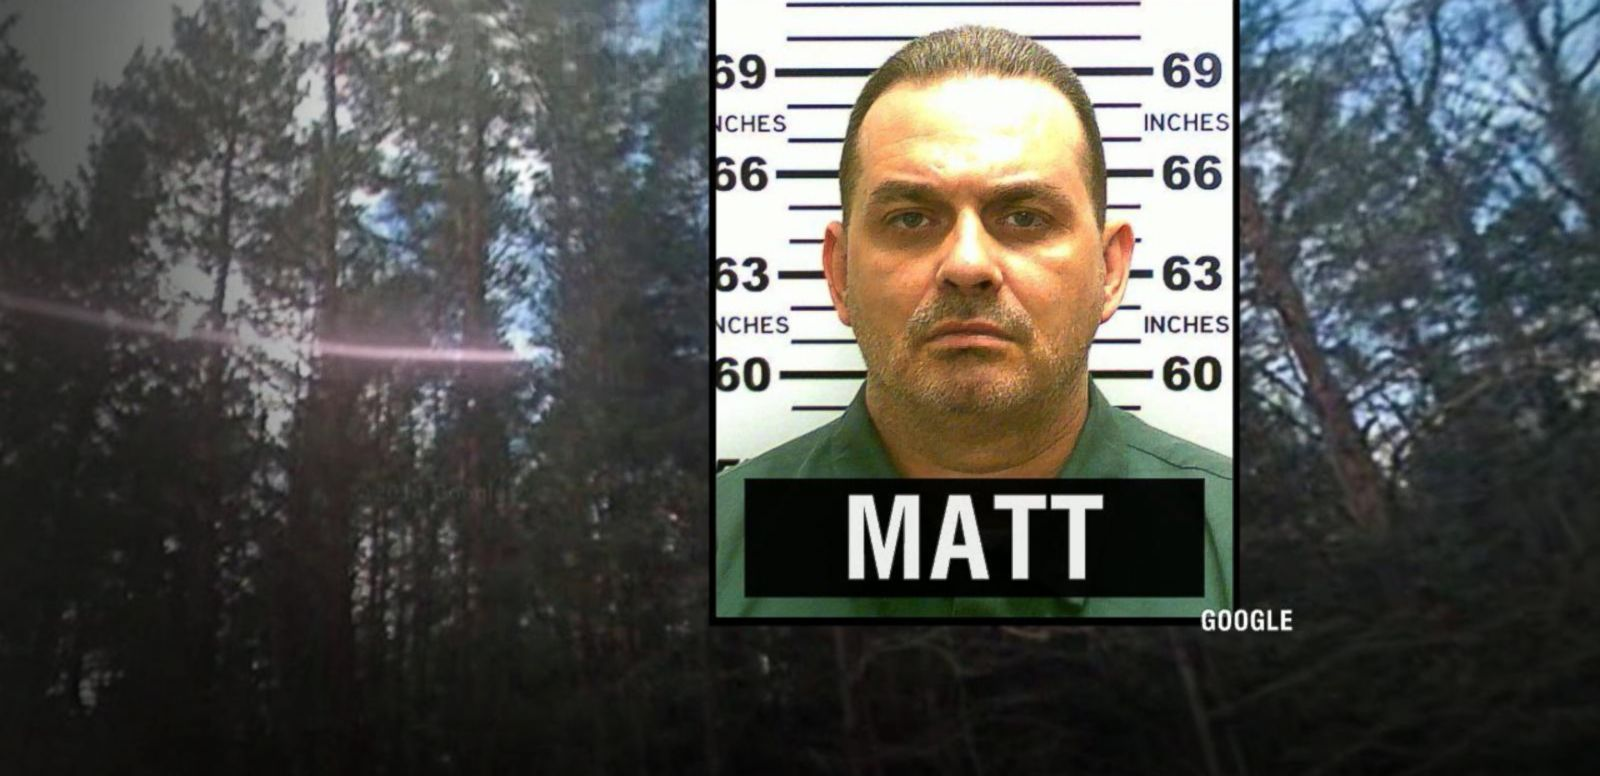 VIDEO: Escaped NY Convict Richard Matt Shot and Killed by Police